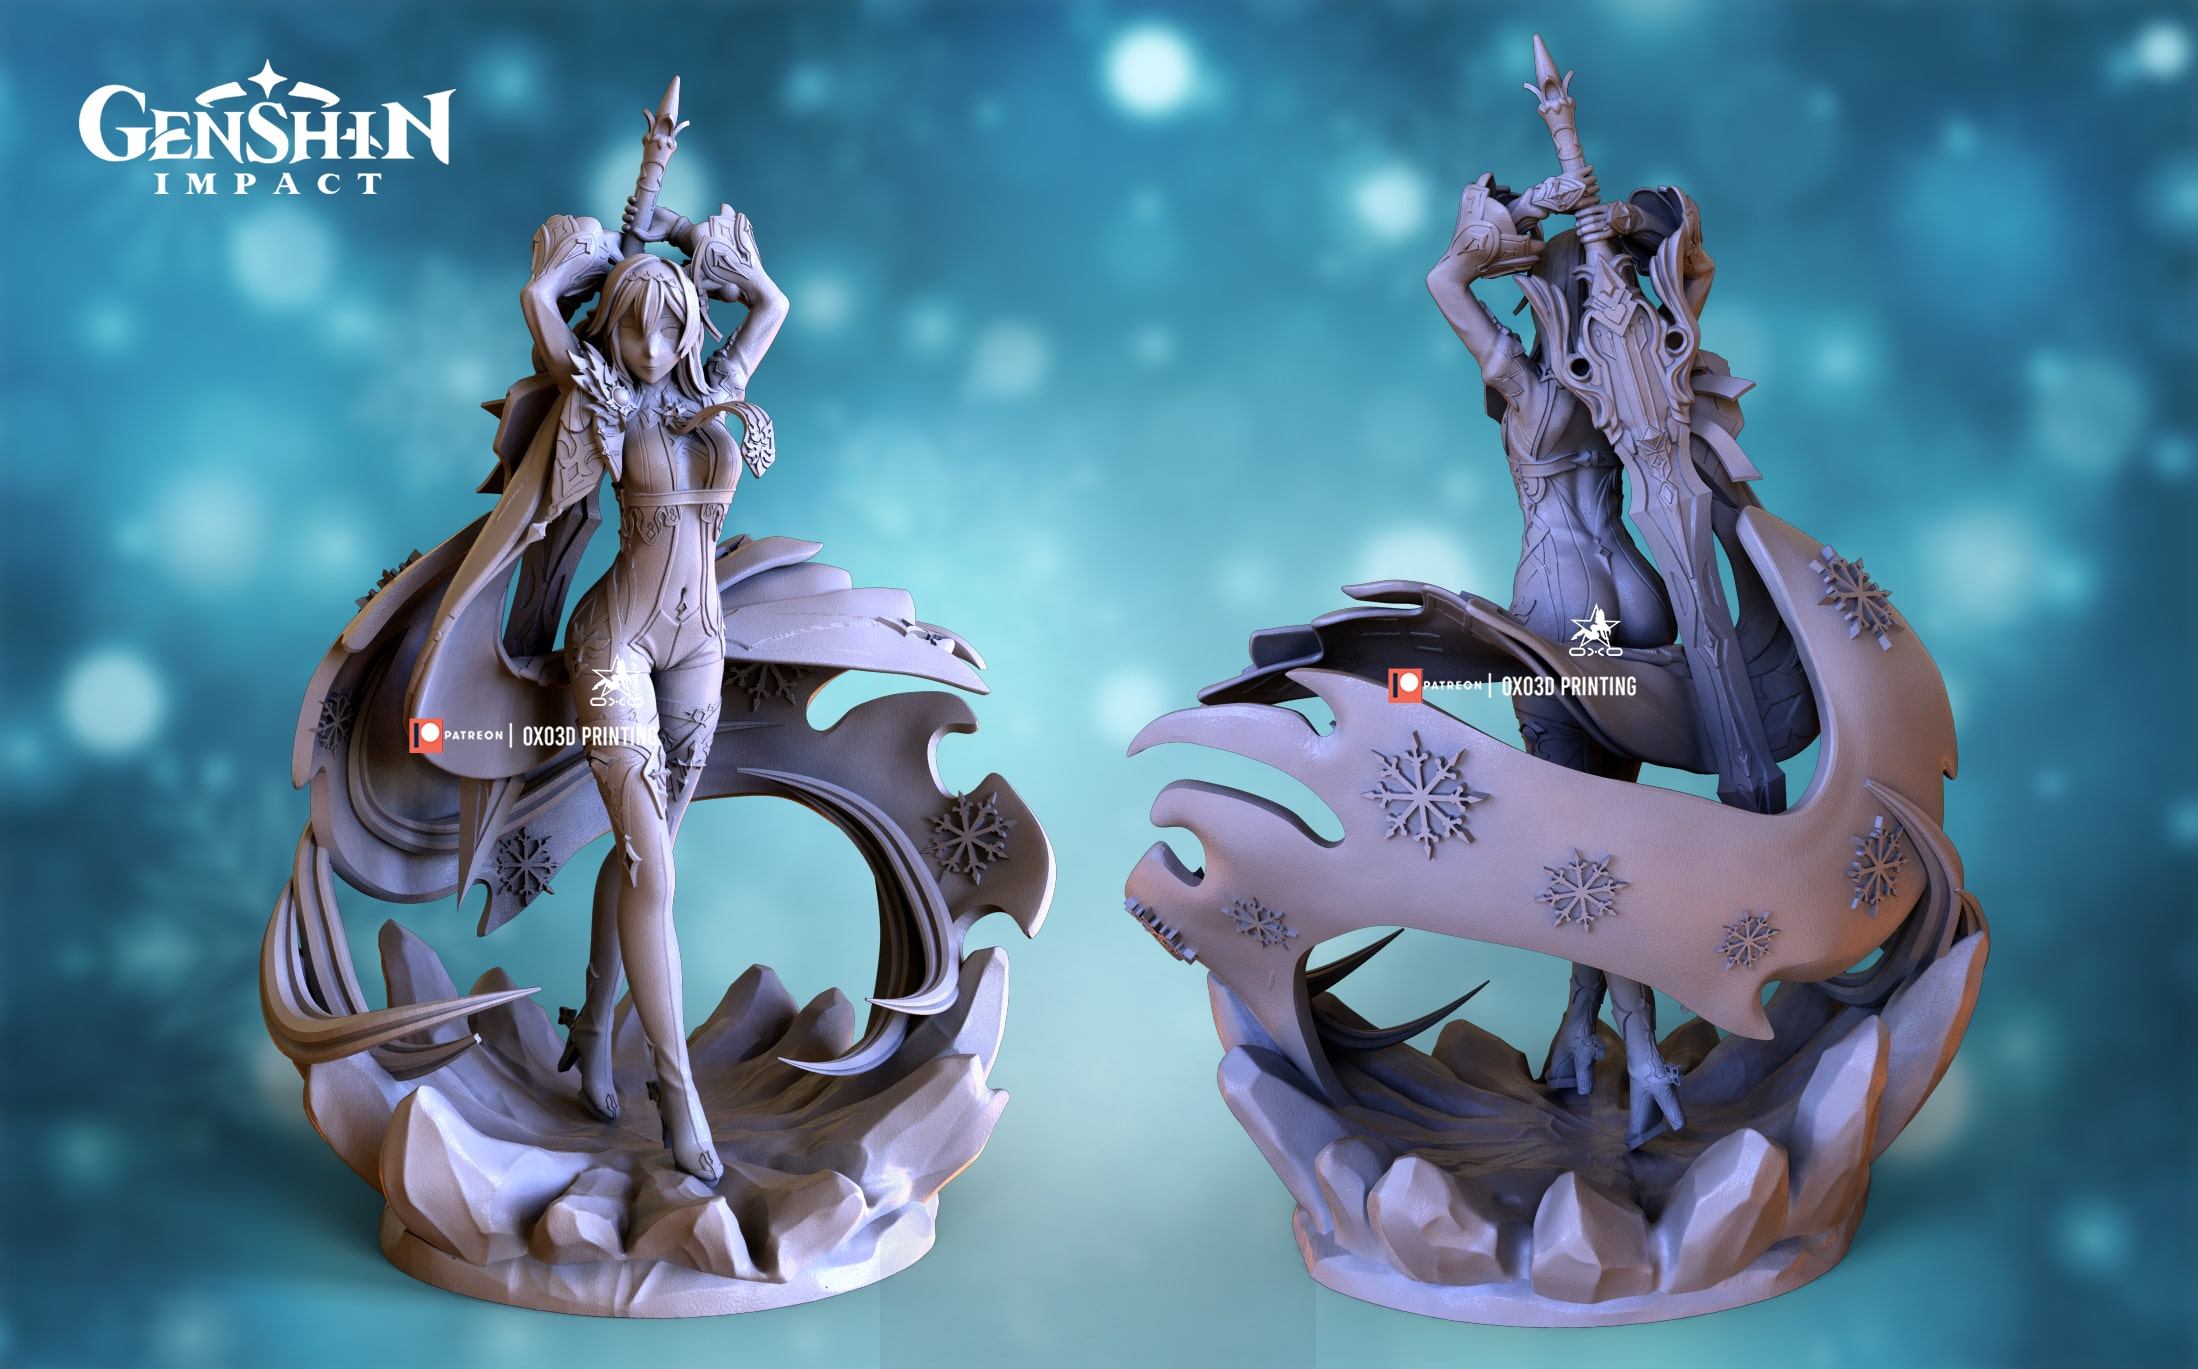 Eula/Yura From Genshin Impact 3D Print STL File - Standard version without color